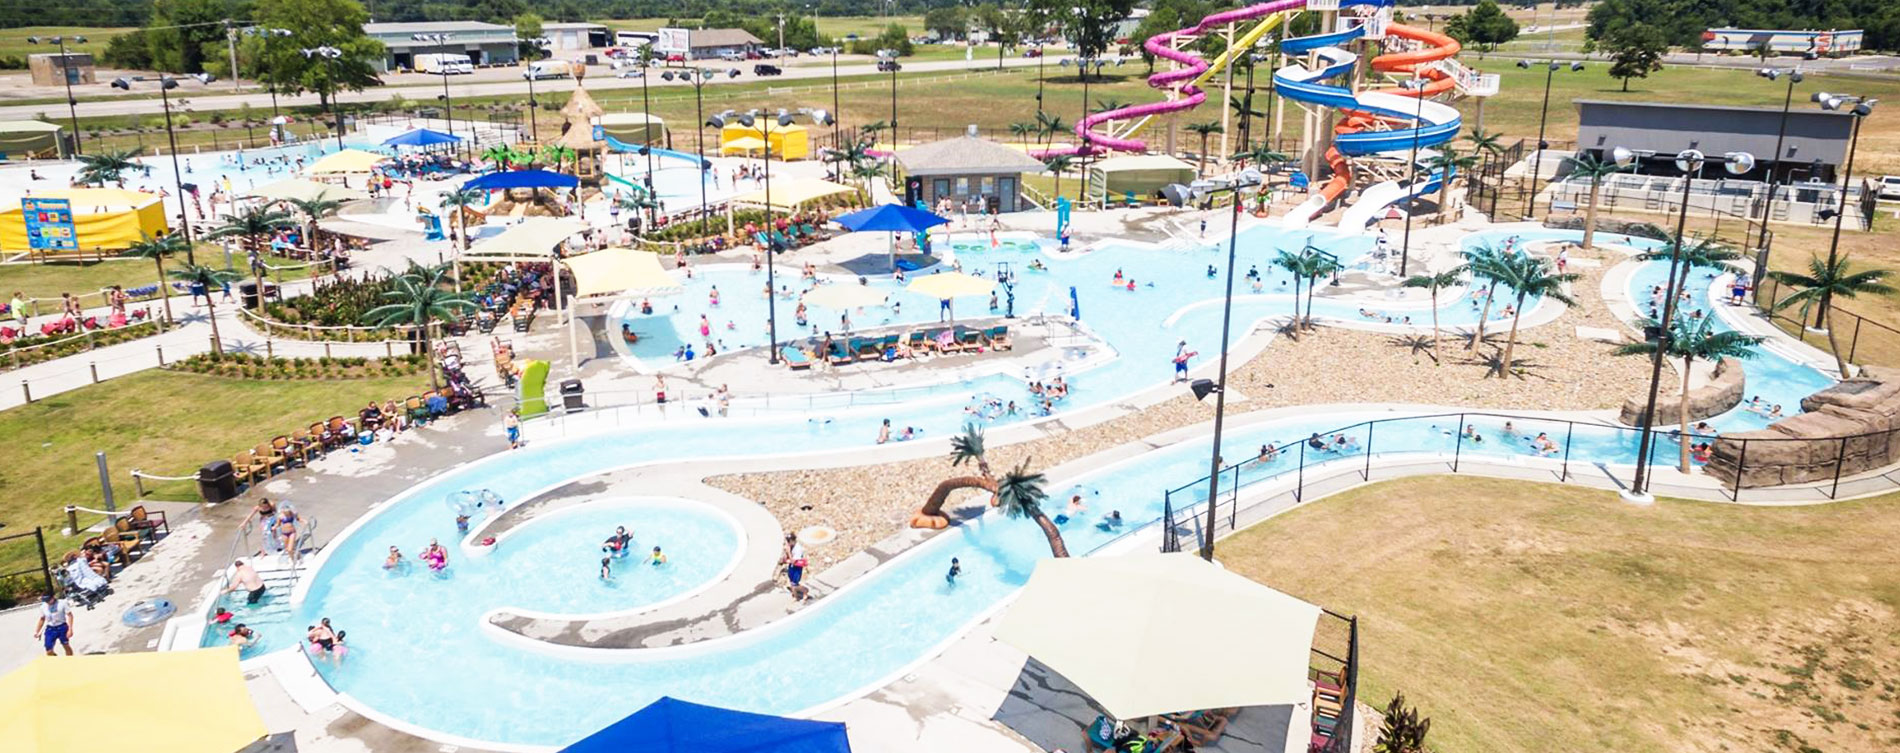 Waterpark & Aquatic Center Development Facilities by American Resort Management, Pennsylvania